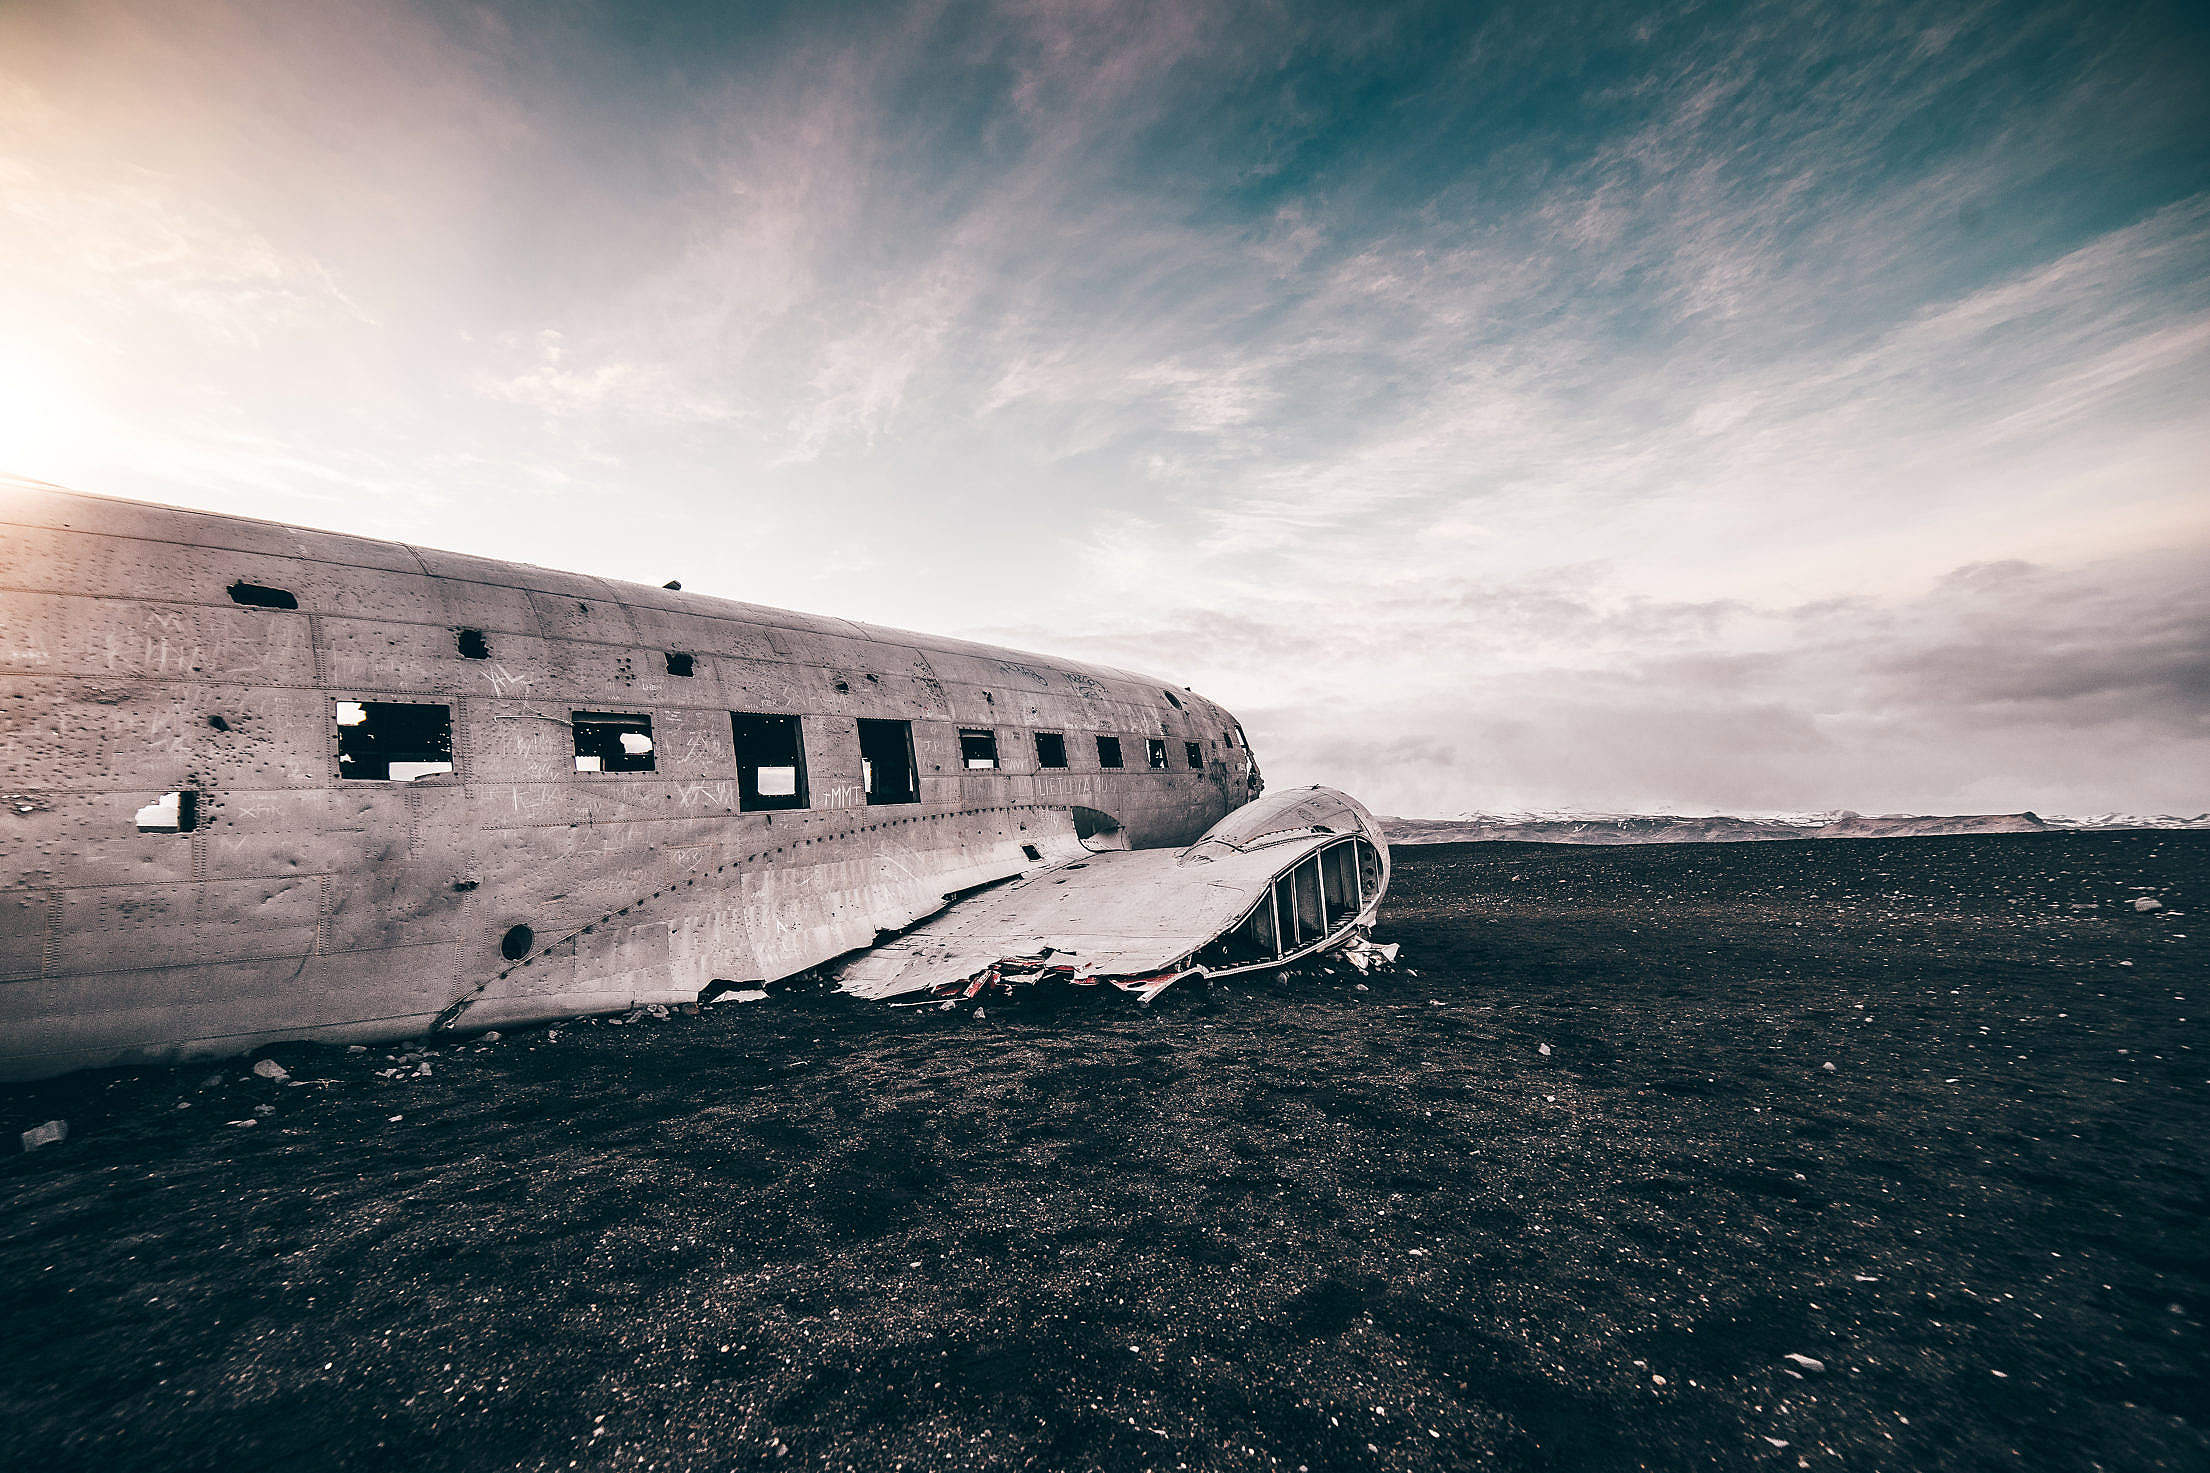 Famous Wrecked Plane on The Coast of Iceland Free Stock Photo